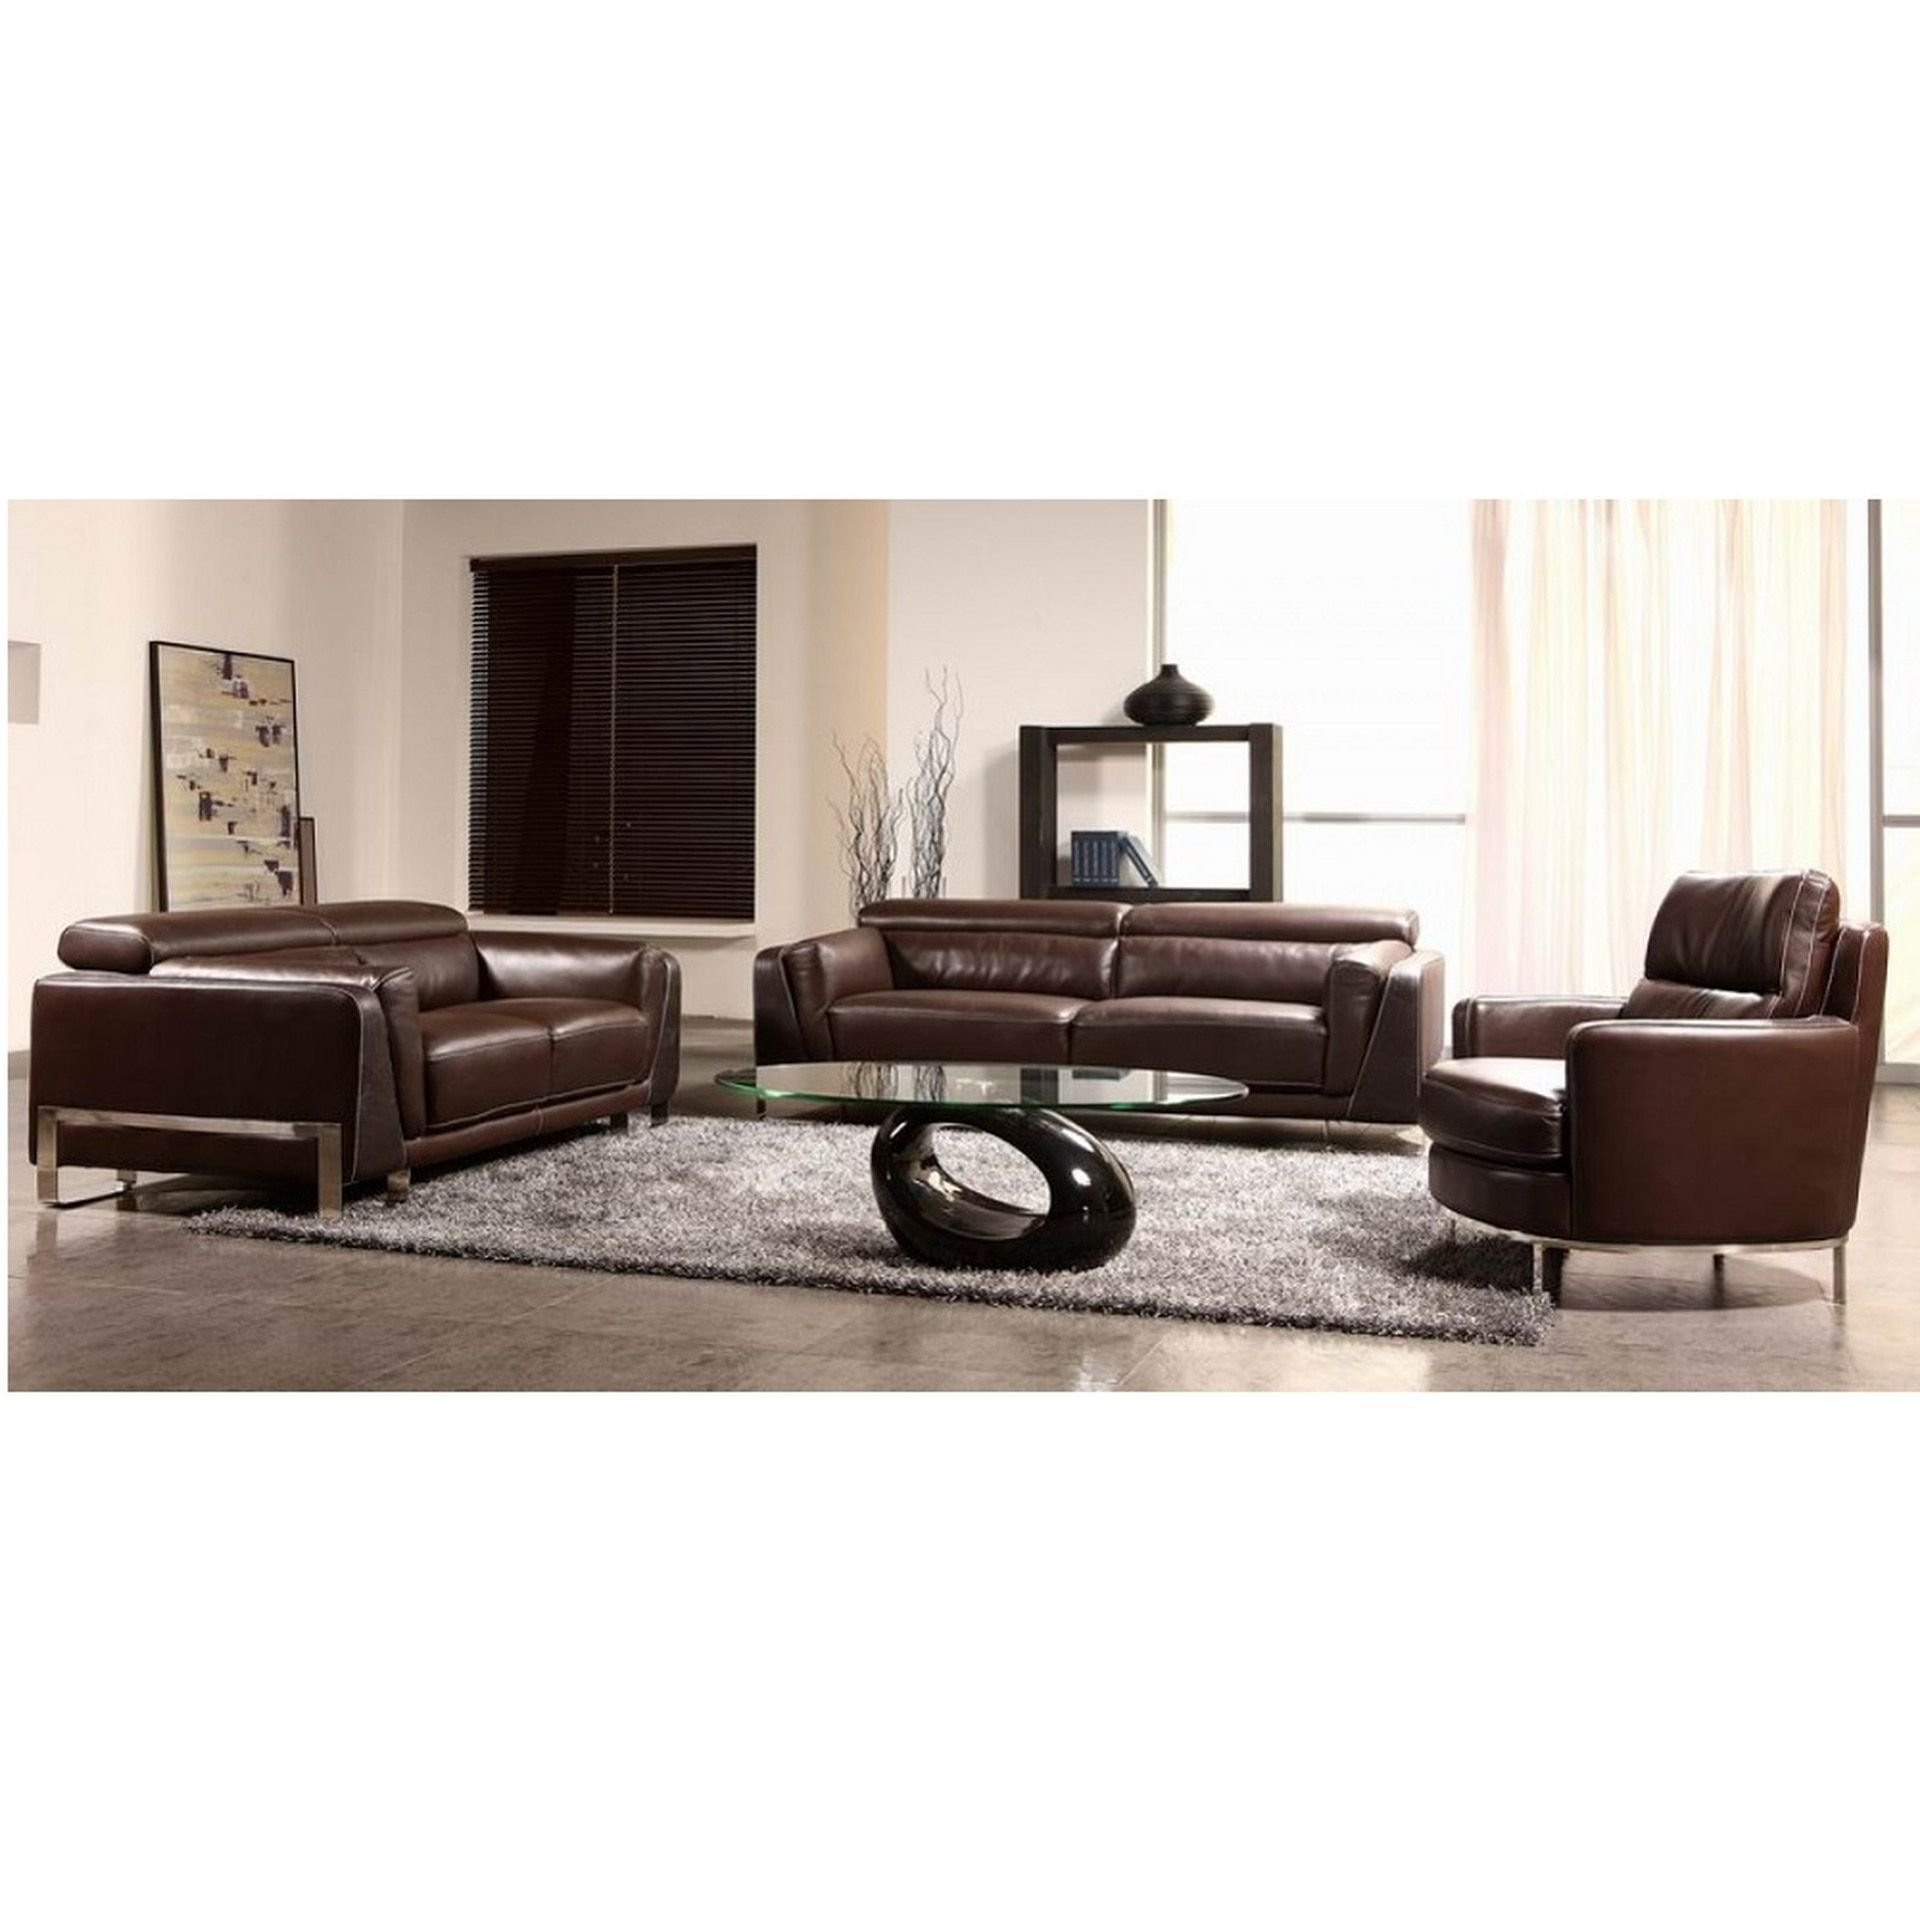 - Divani Casa BO3946 Espresso Crocodile Leather Sofa Set (With